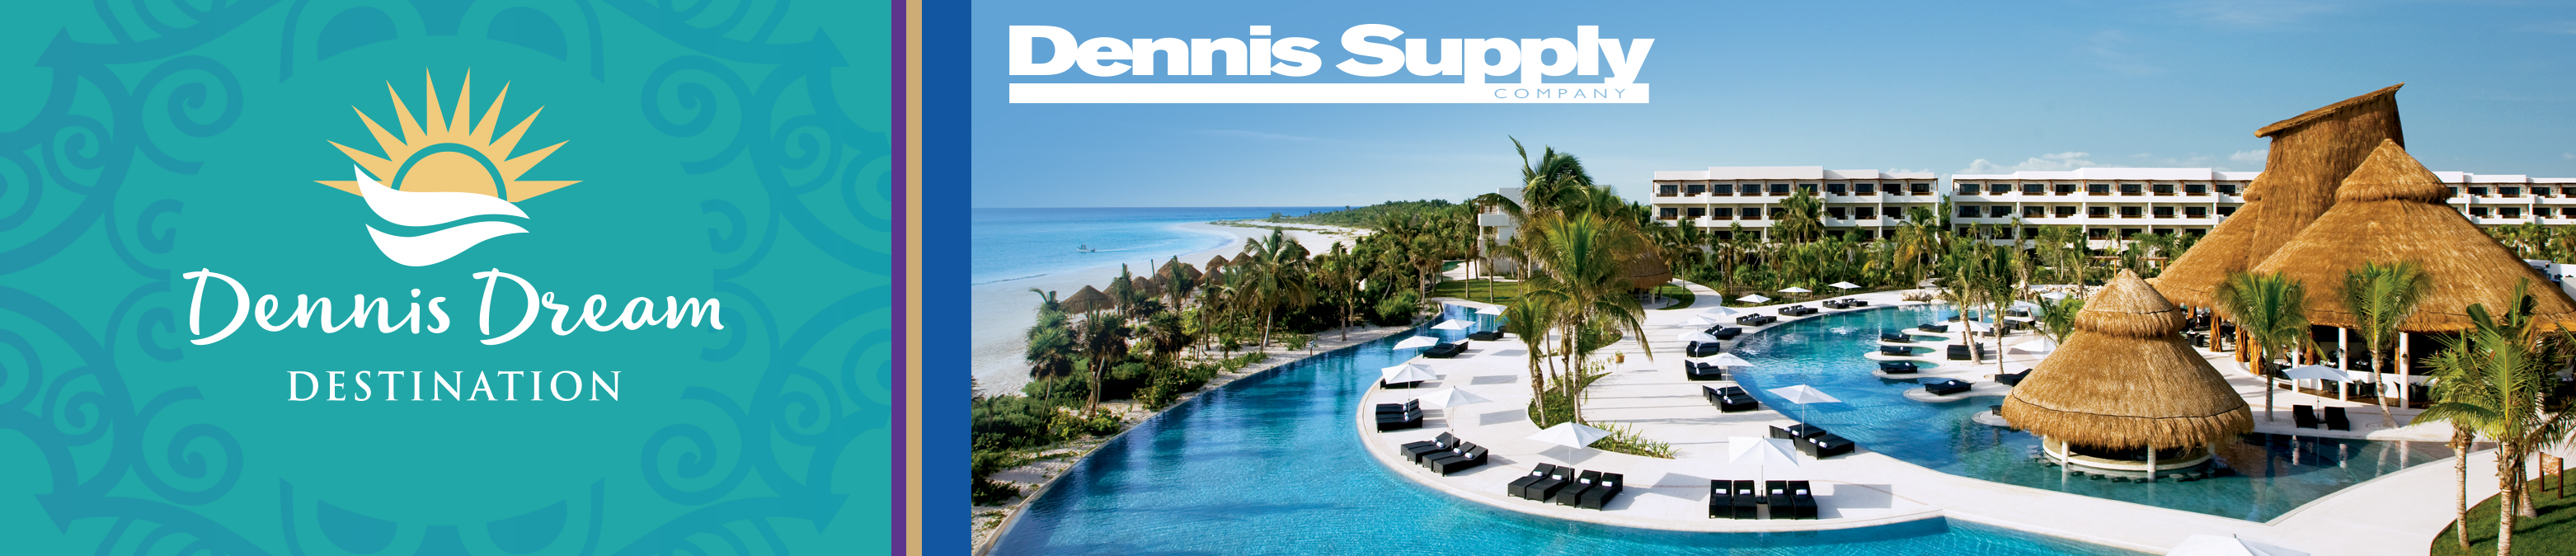 Dennis Dream Destination Sponsorship Enrollment